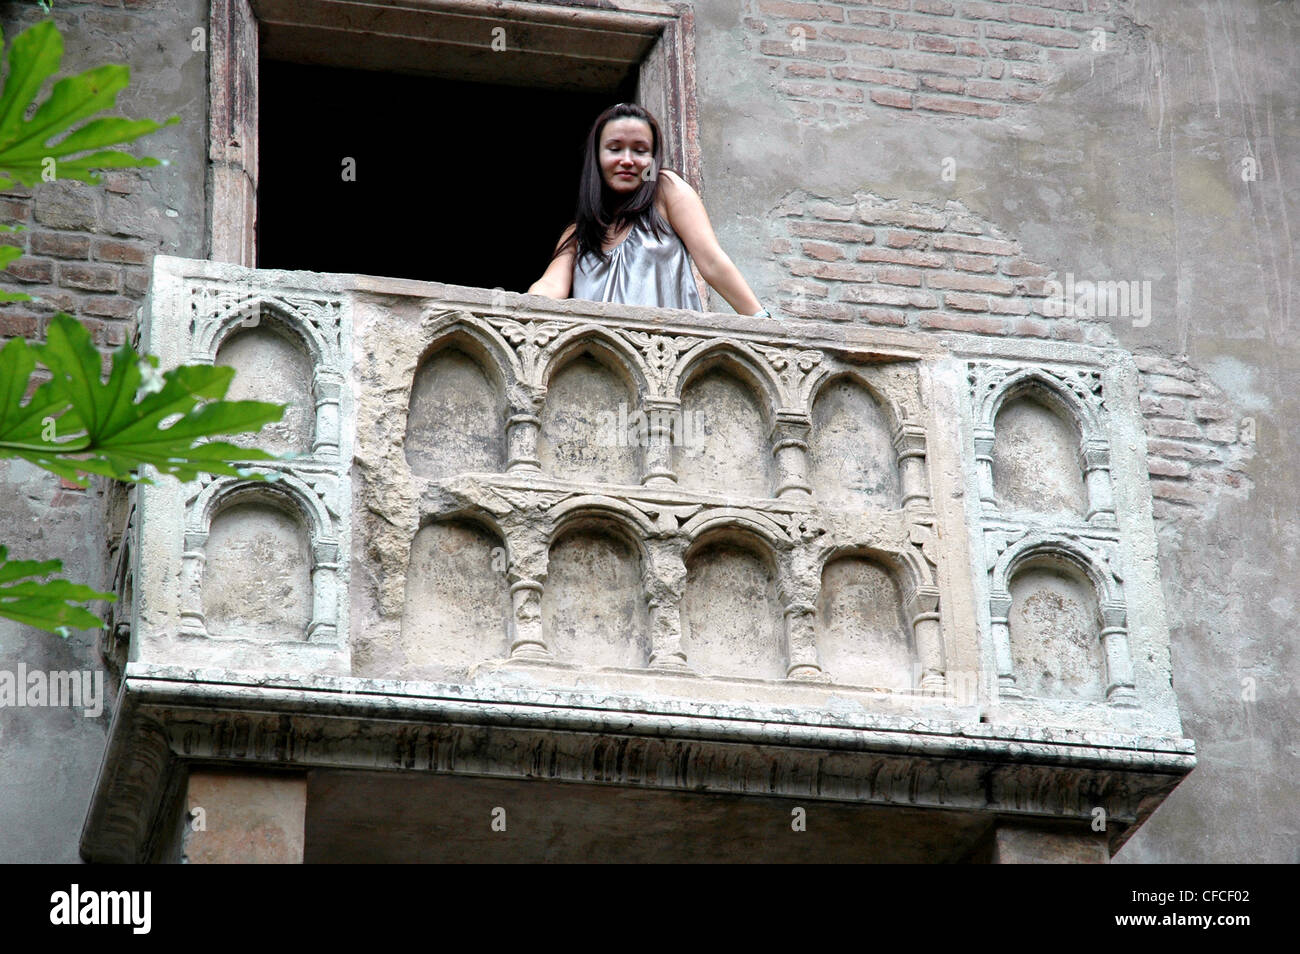 A  young woman poses, Juliet  like, on the famous balcony in Verona Italy - Stock Image